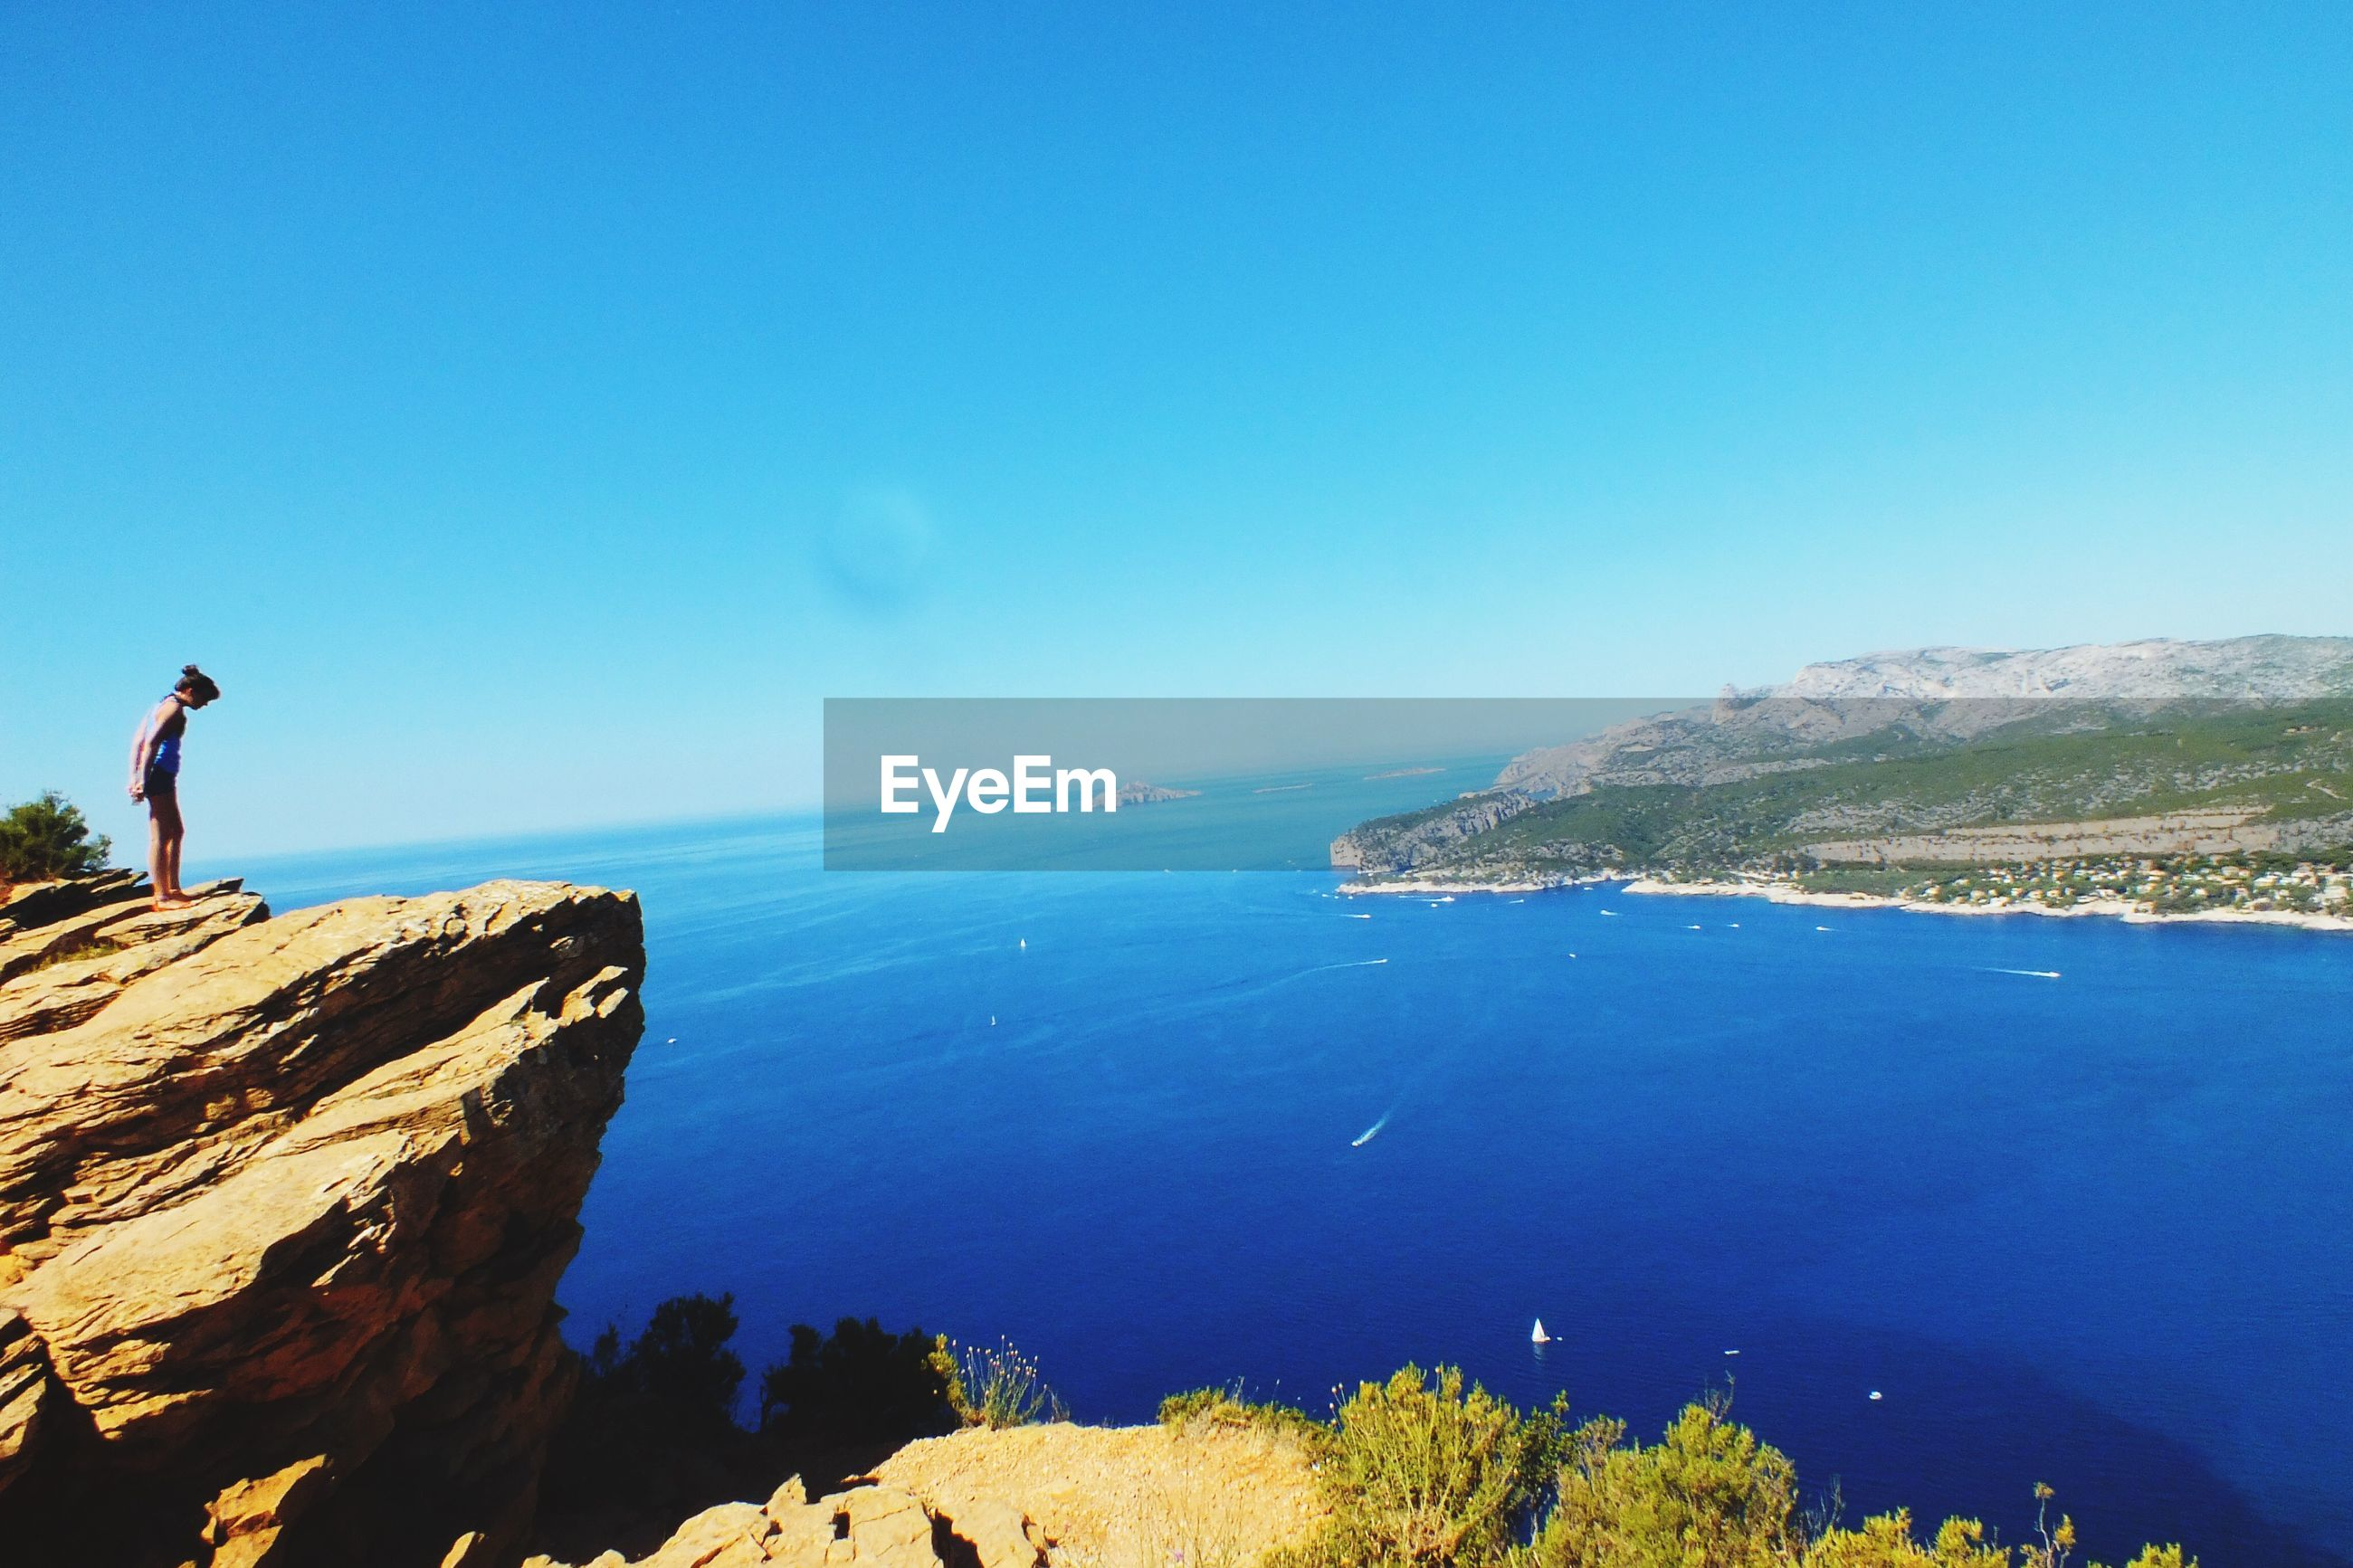 water, sea, blue, horizon over water, tranquil scene, scenics, tranquility, clear sky, beauty in nature, nature, remote, outdoors, calm, day, sky, majestic, solitude, vacations, cliff, coastline, shore